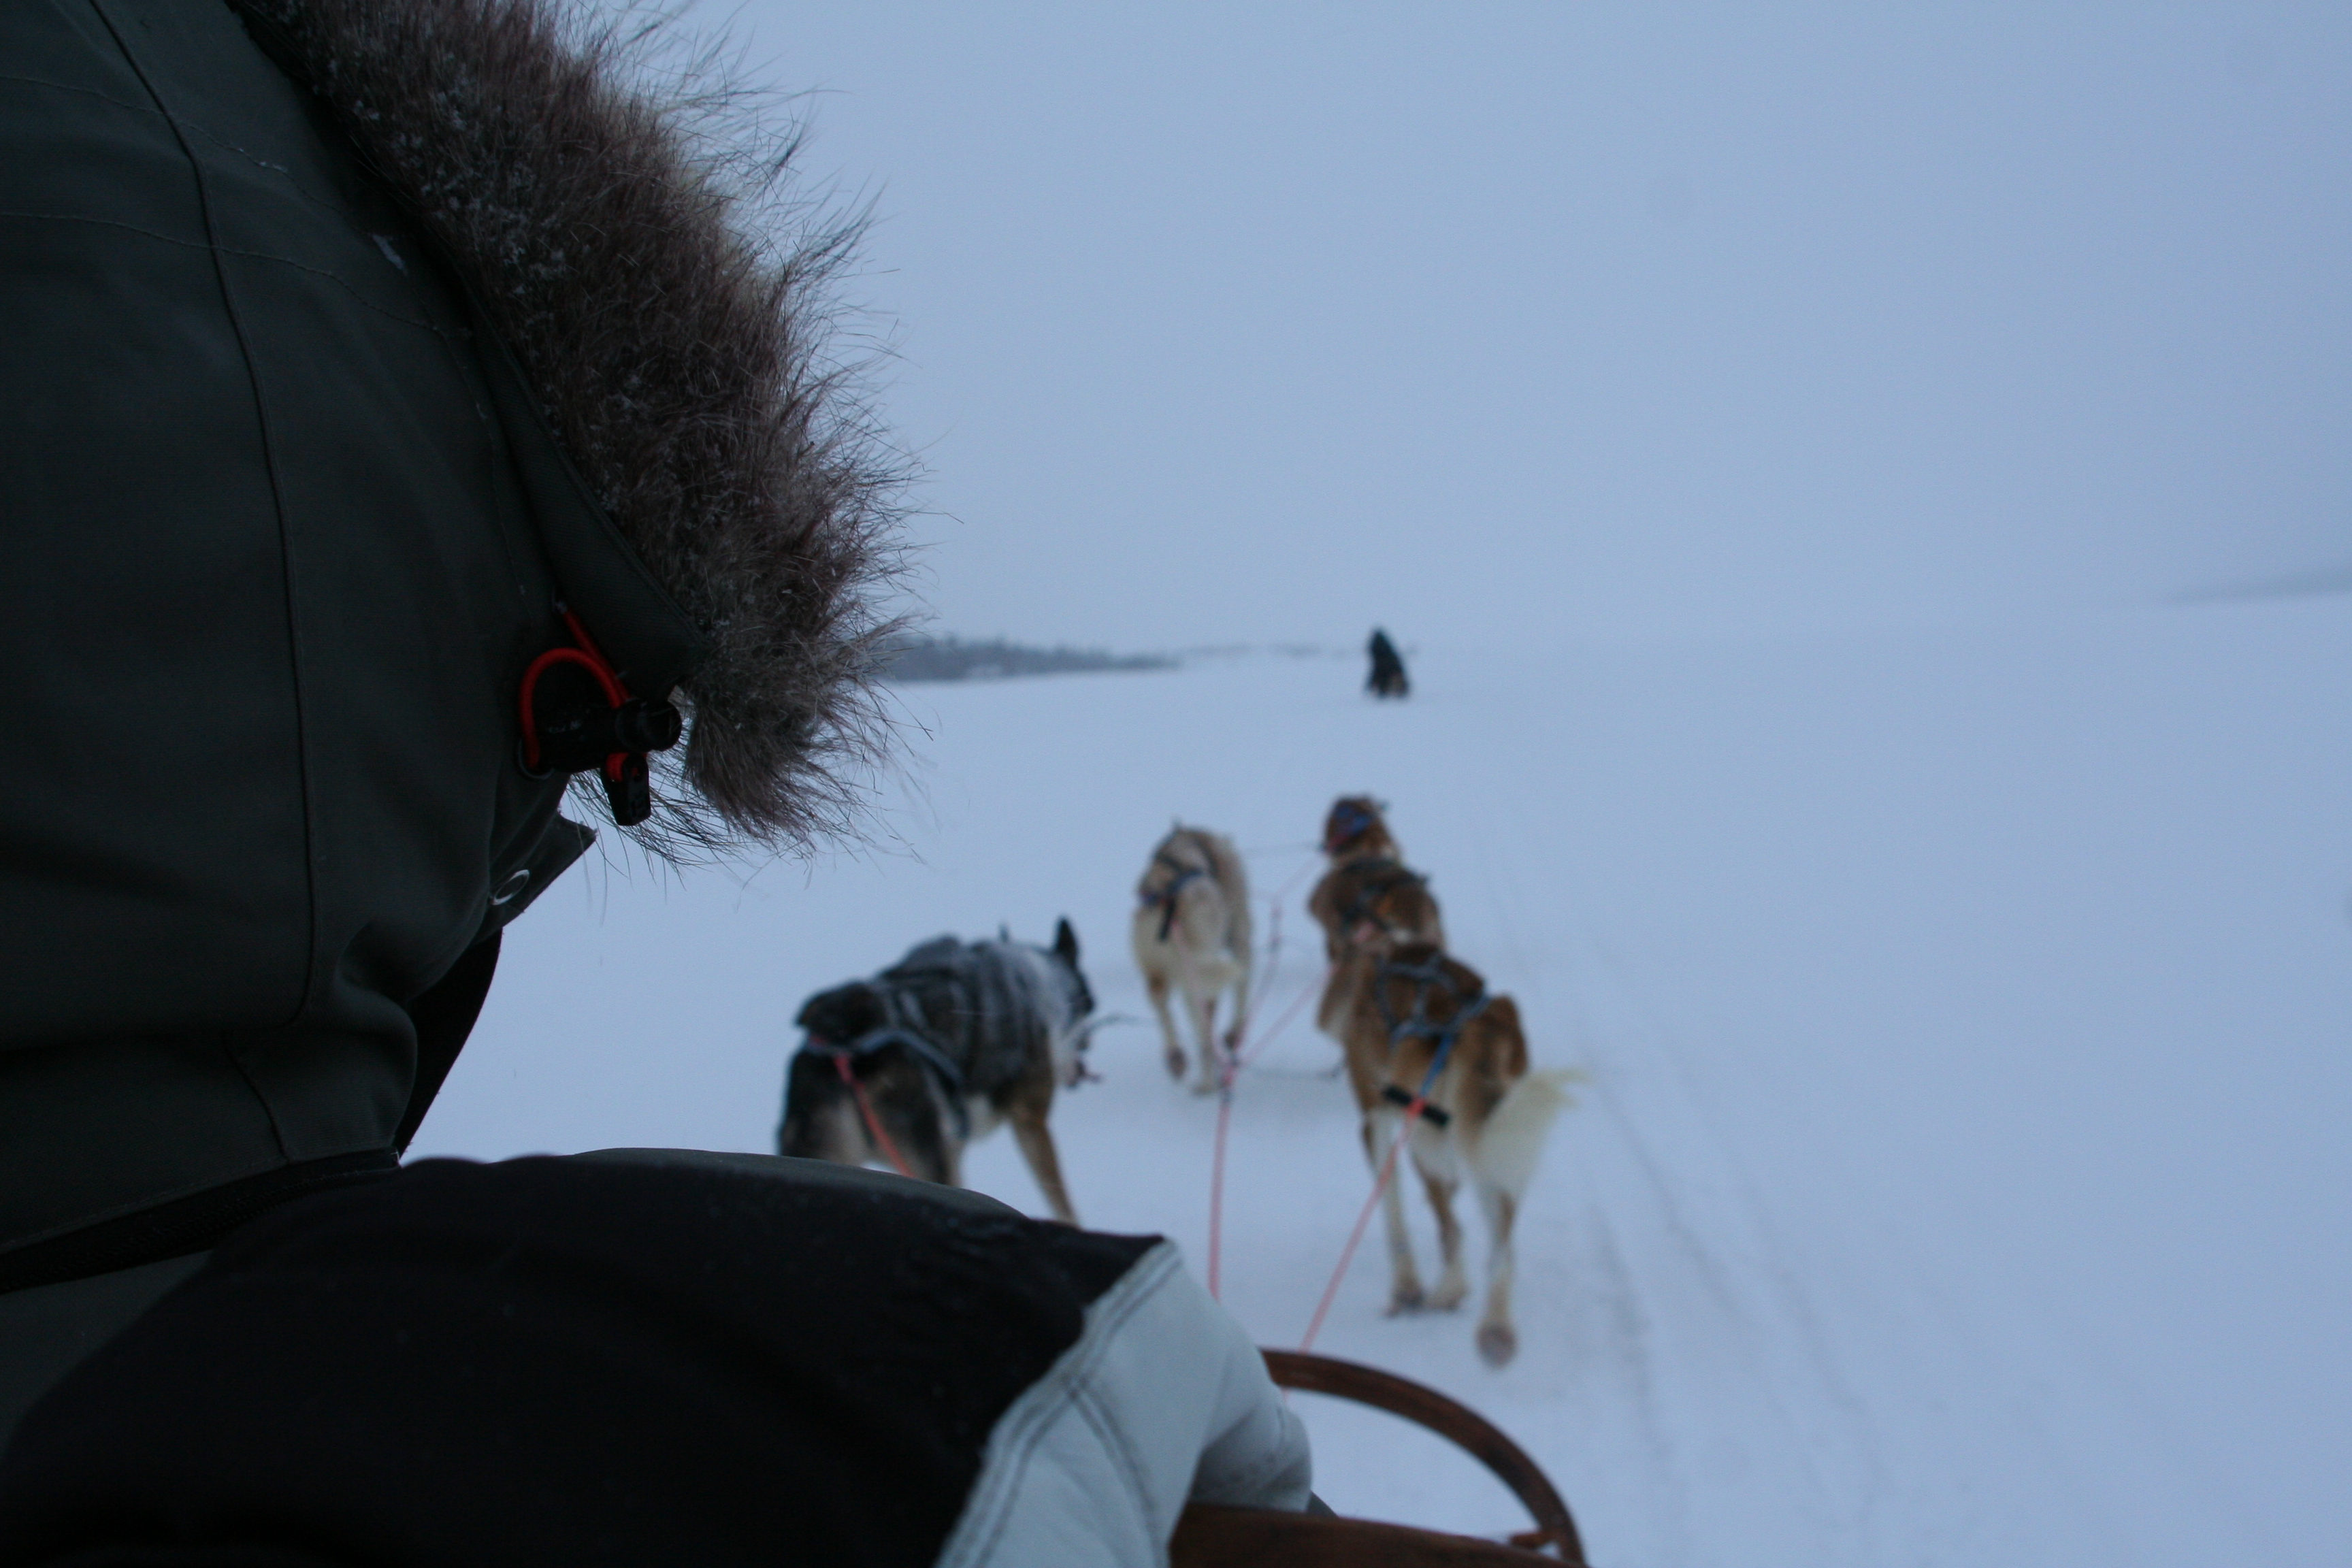 Dog sledge tour in the winter kingdome of Swedish Lapland.